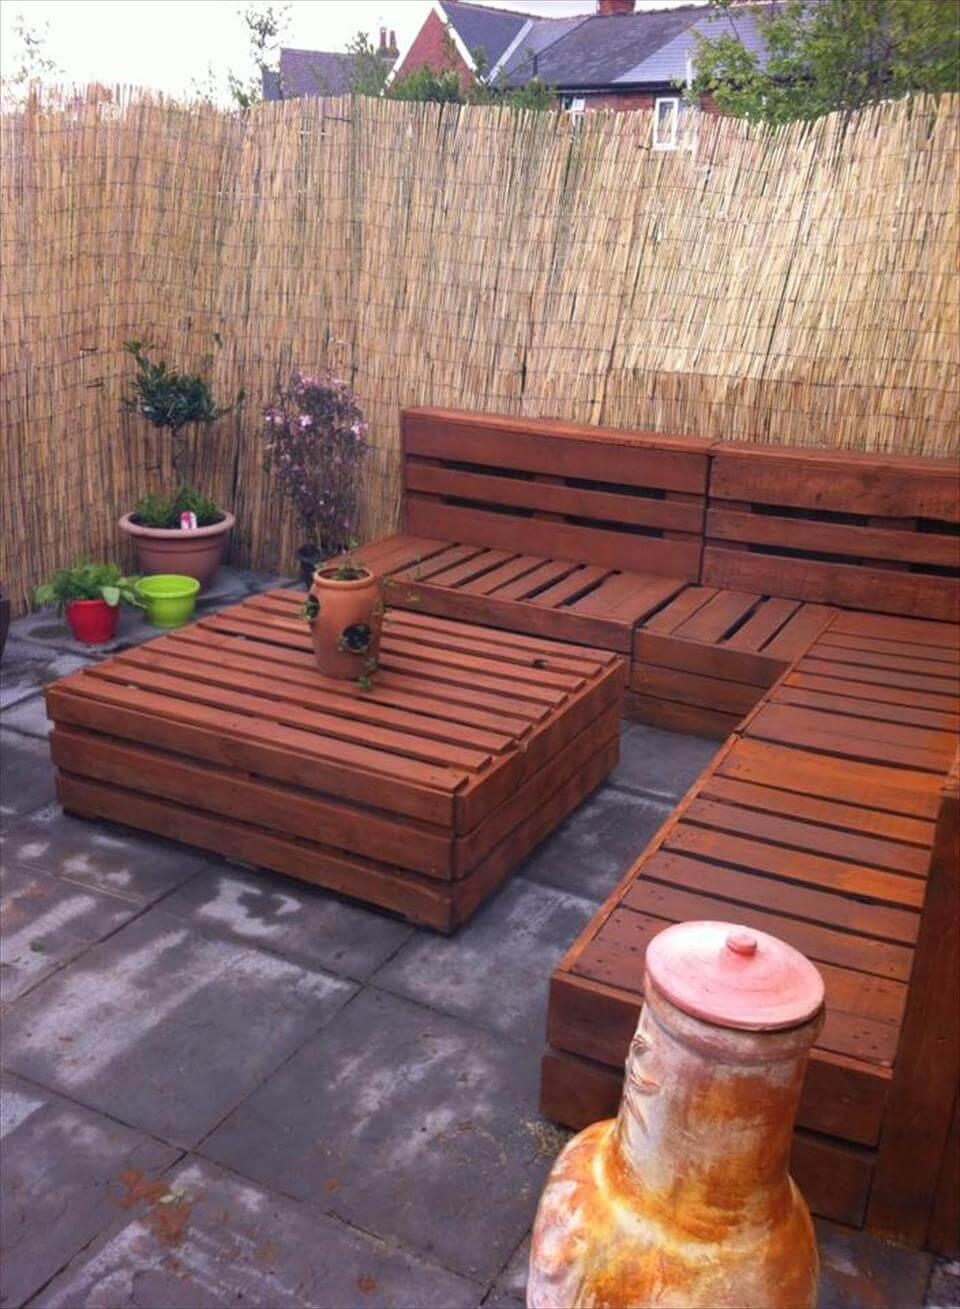 pallet garden furniture plansjpg 9601309 pallet furniture pinterest pallet patio furniture patio furniture ideas and pallet patio - Garden Furniture Wooden Pallets